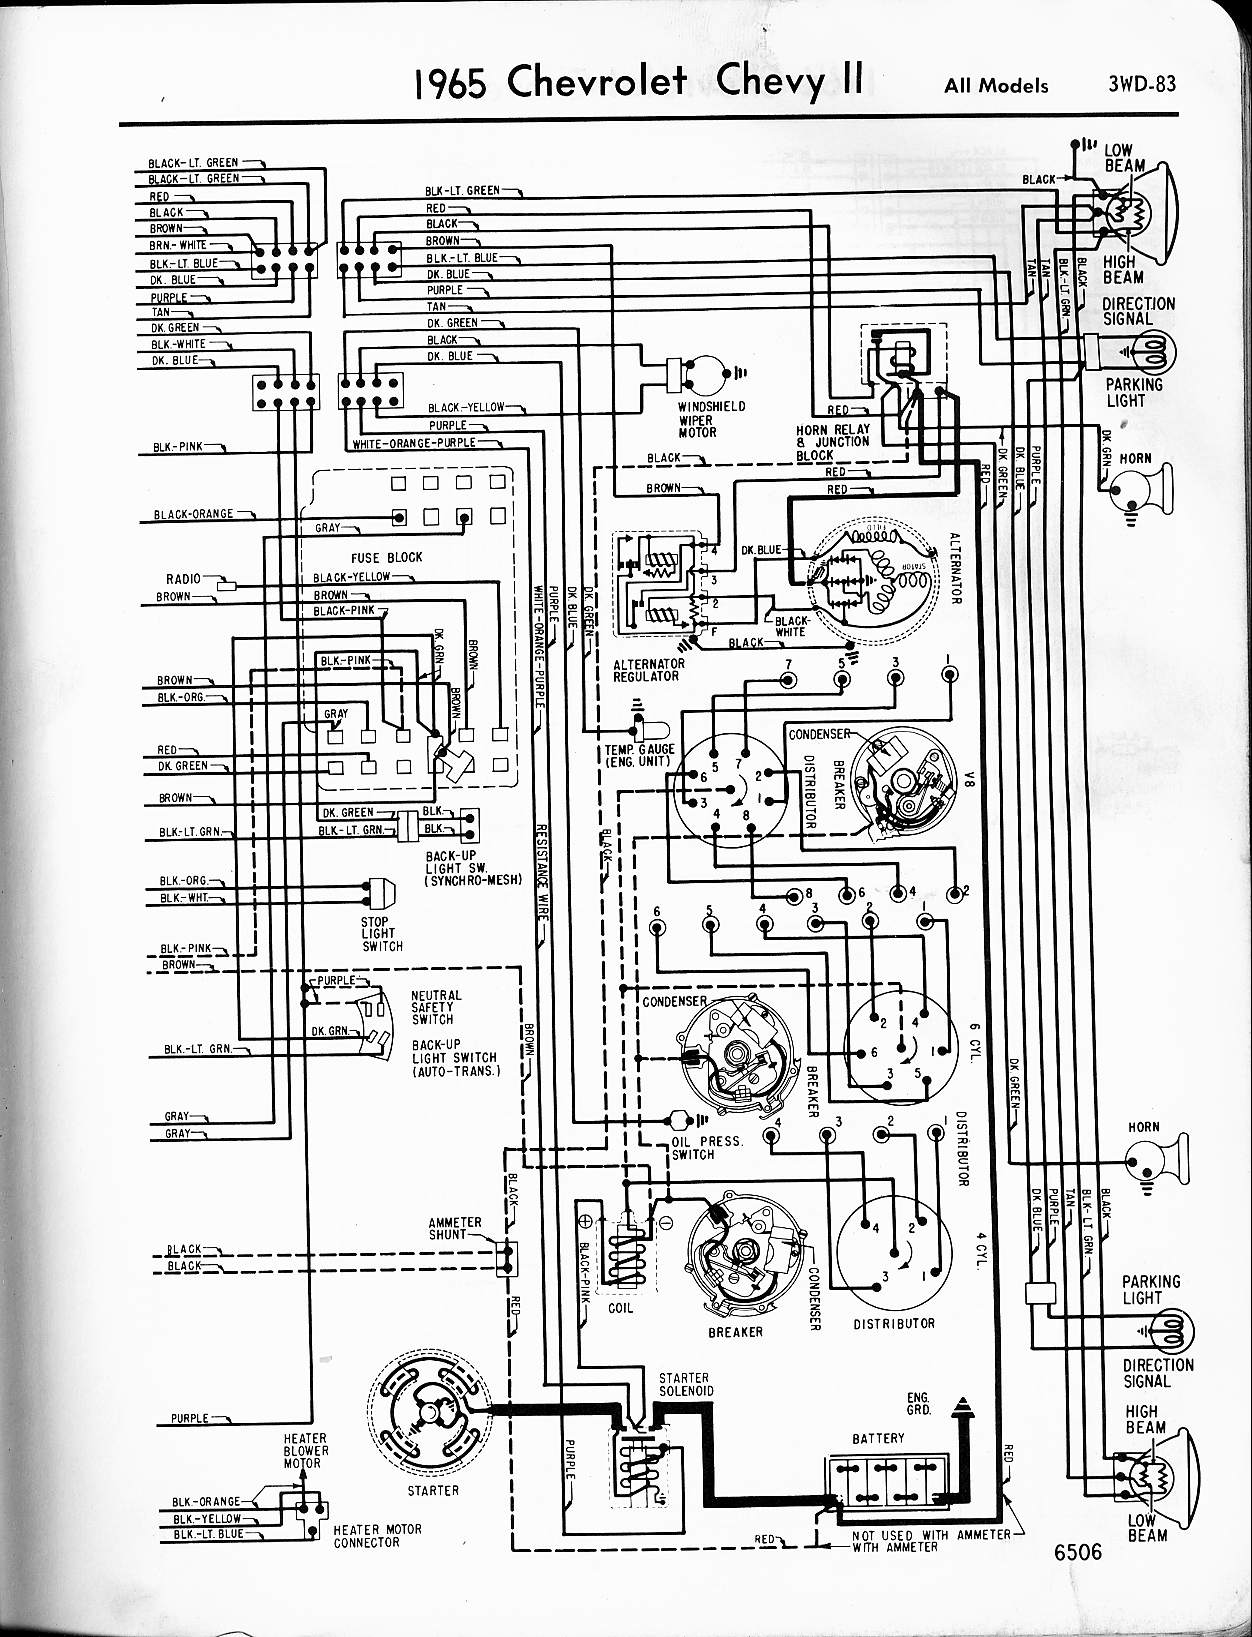 2 wire schematic diagram wiring library rh 66 subluxation com de